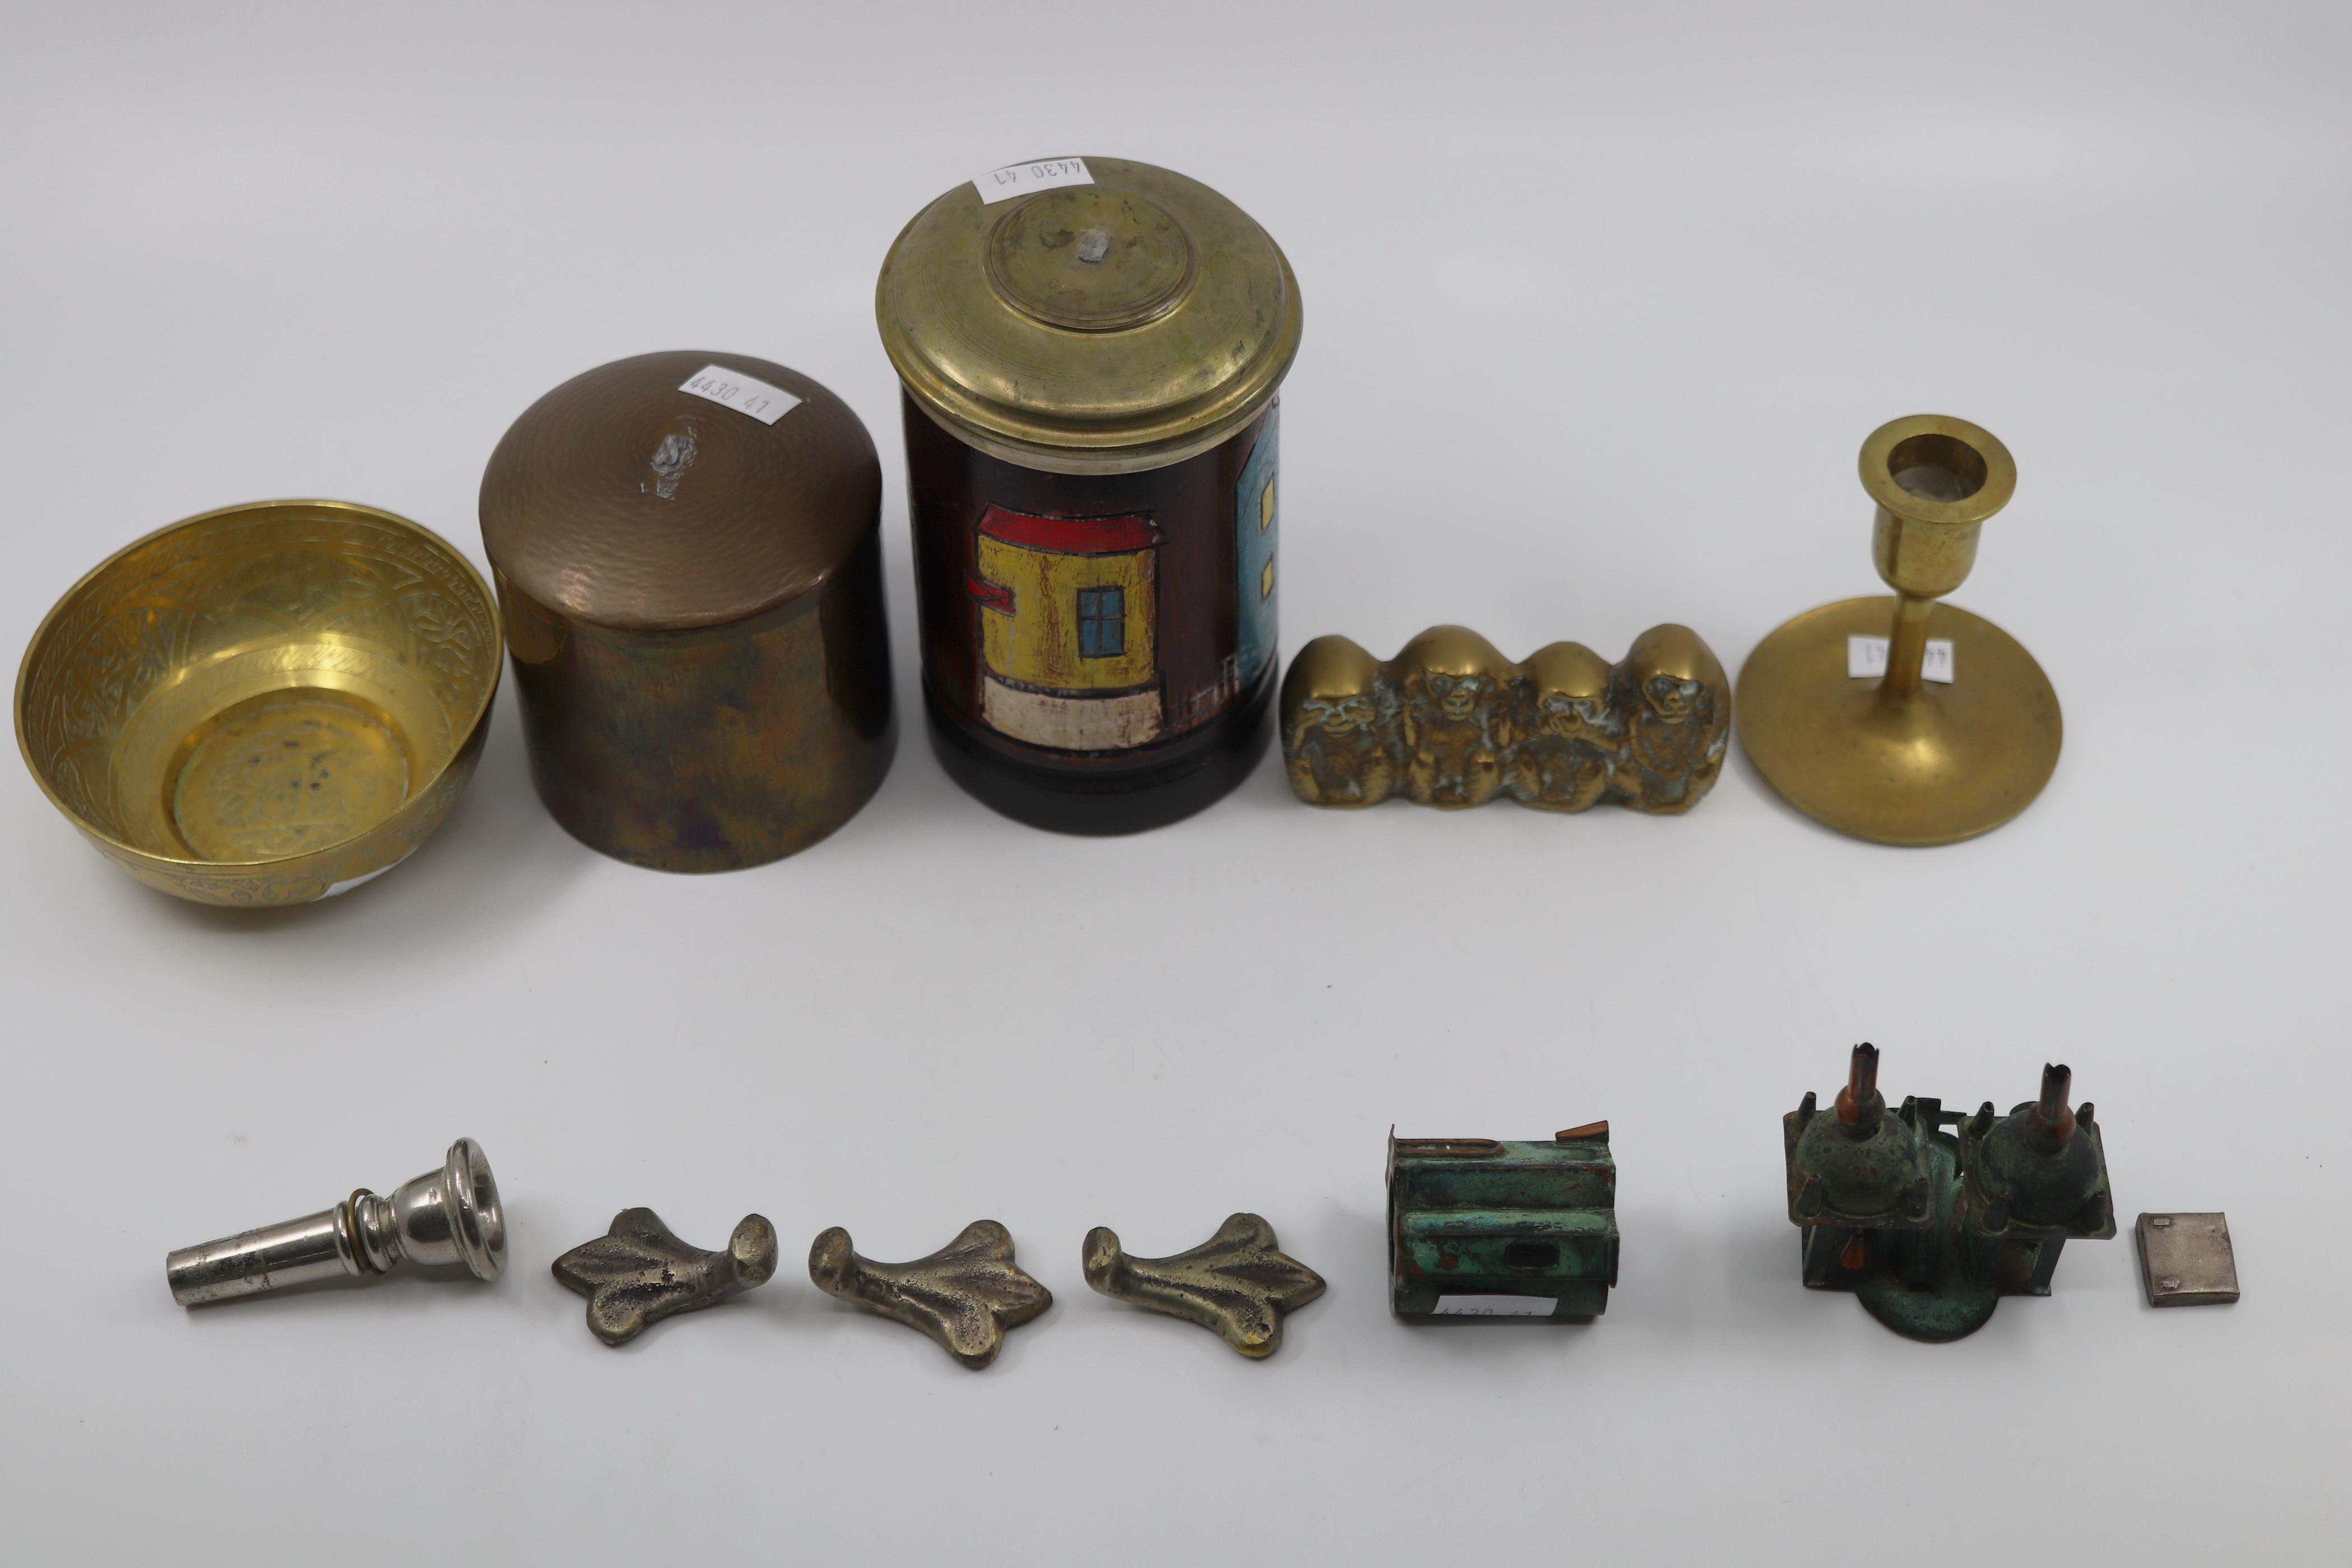 SMALL BRASS TRINKETS & ITEMS WITH A LIDDED CANISTER, SMALL PAINTED CHURCH, BOWL ETC